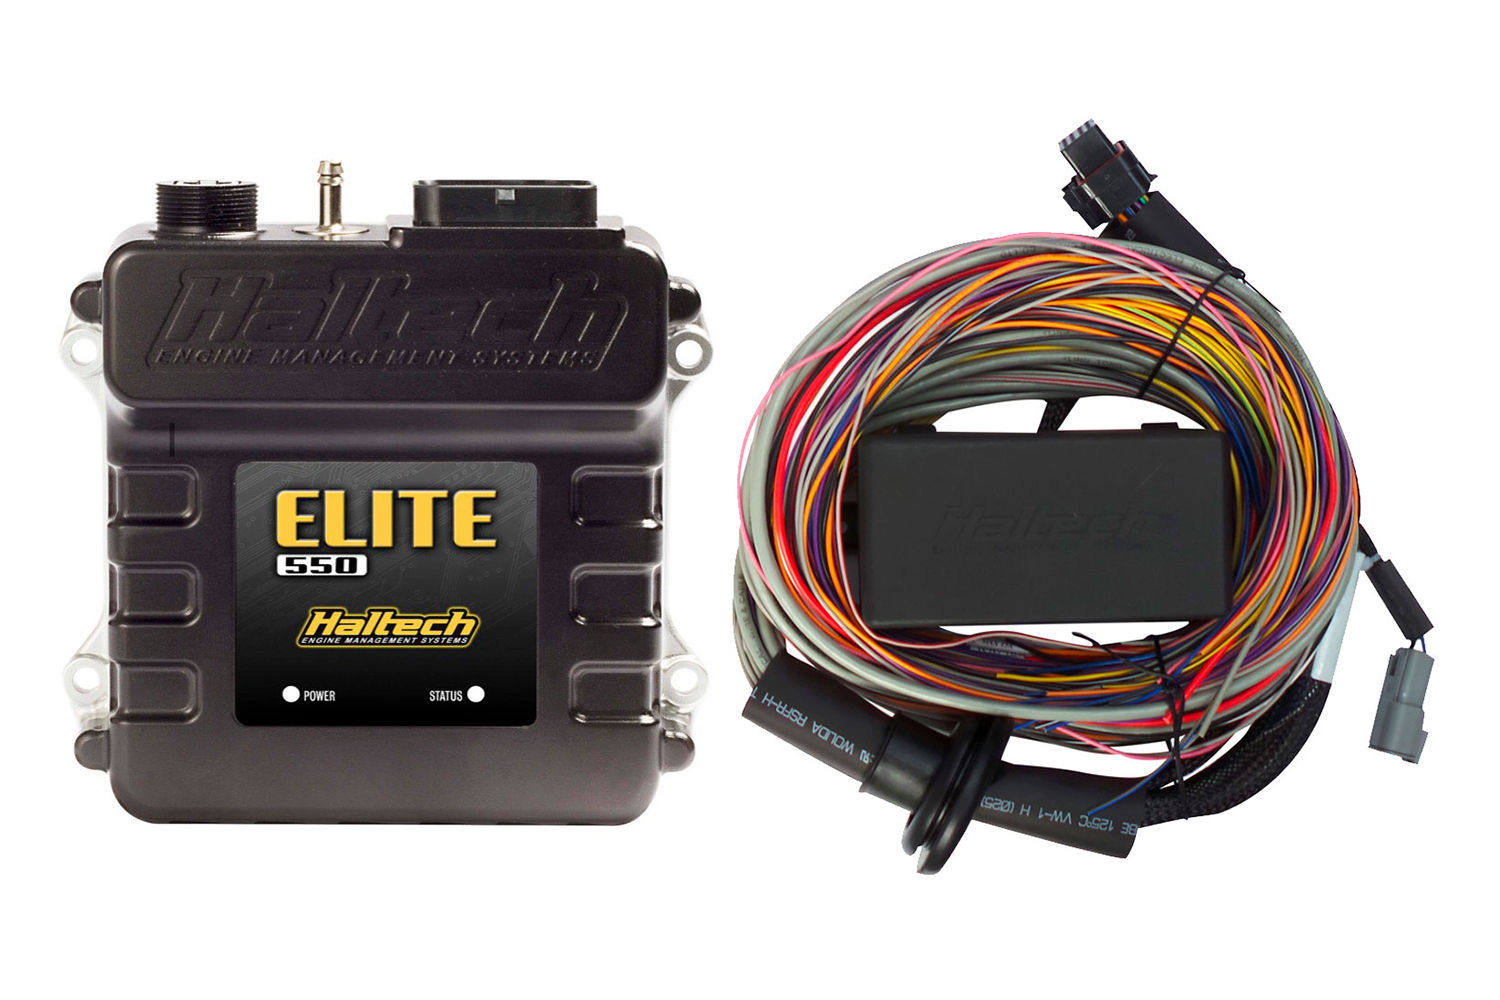 Details about Haltech Elite 550 + Premium Universal Wire-in Harness on